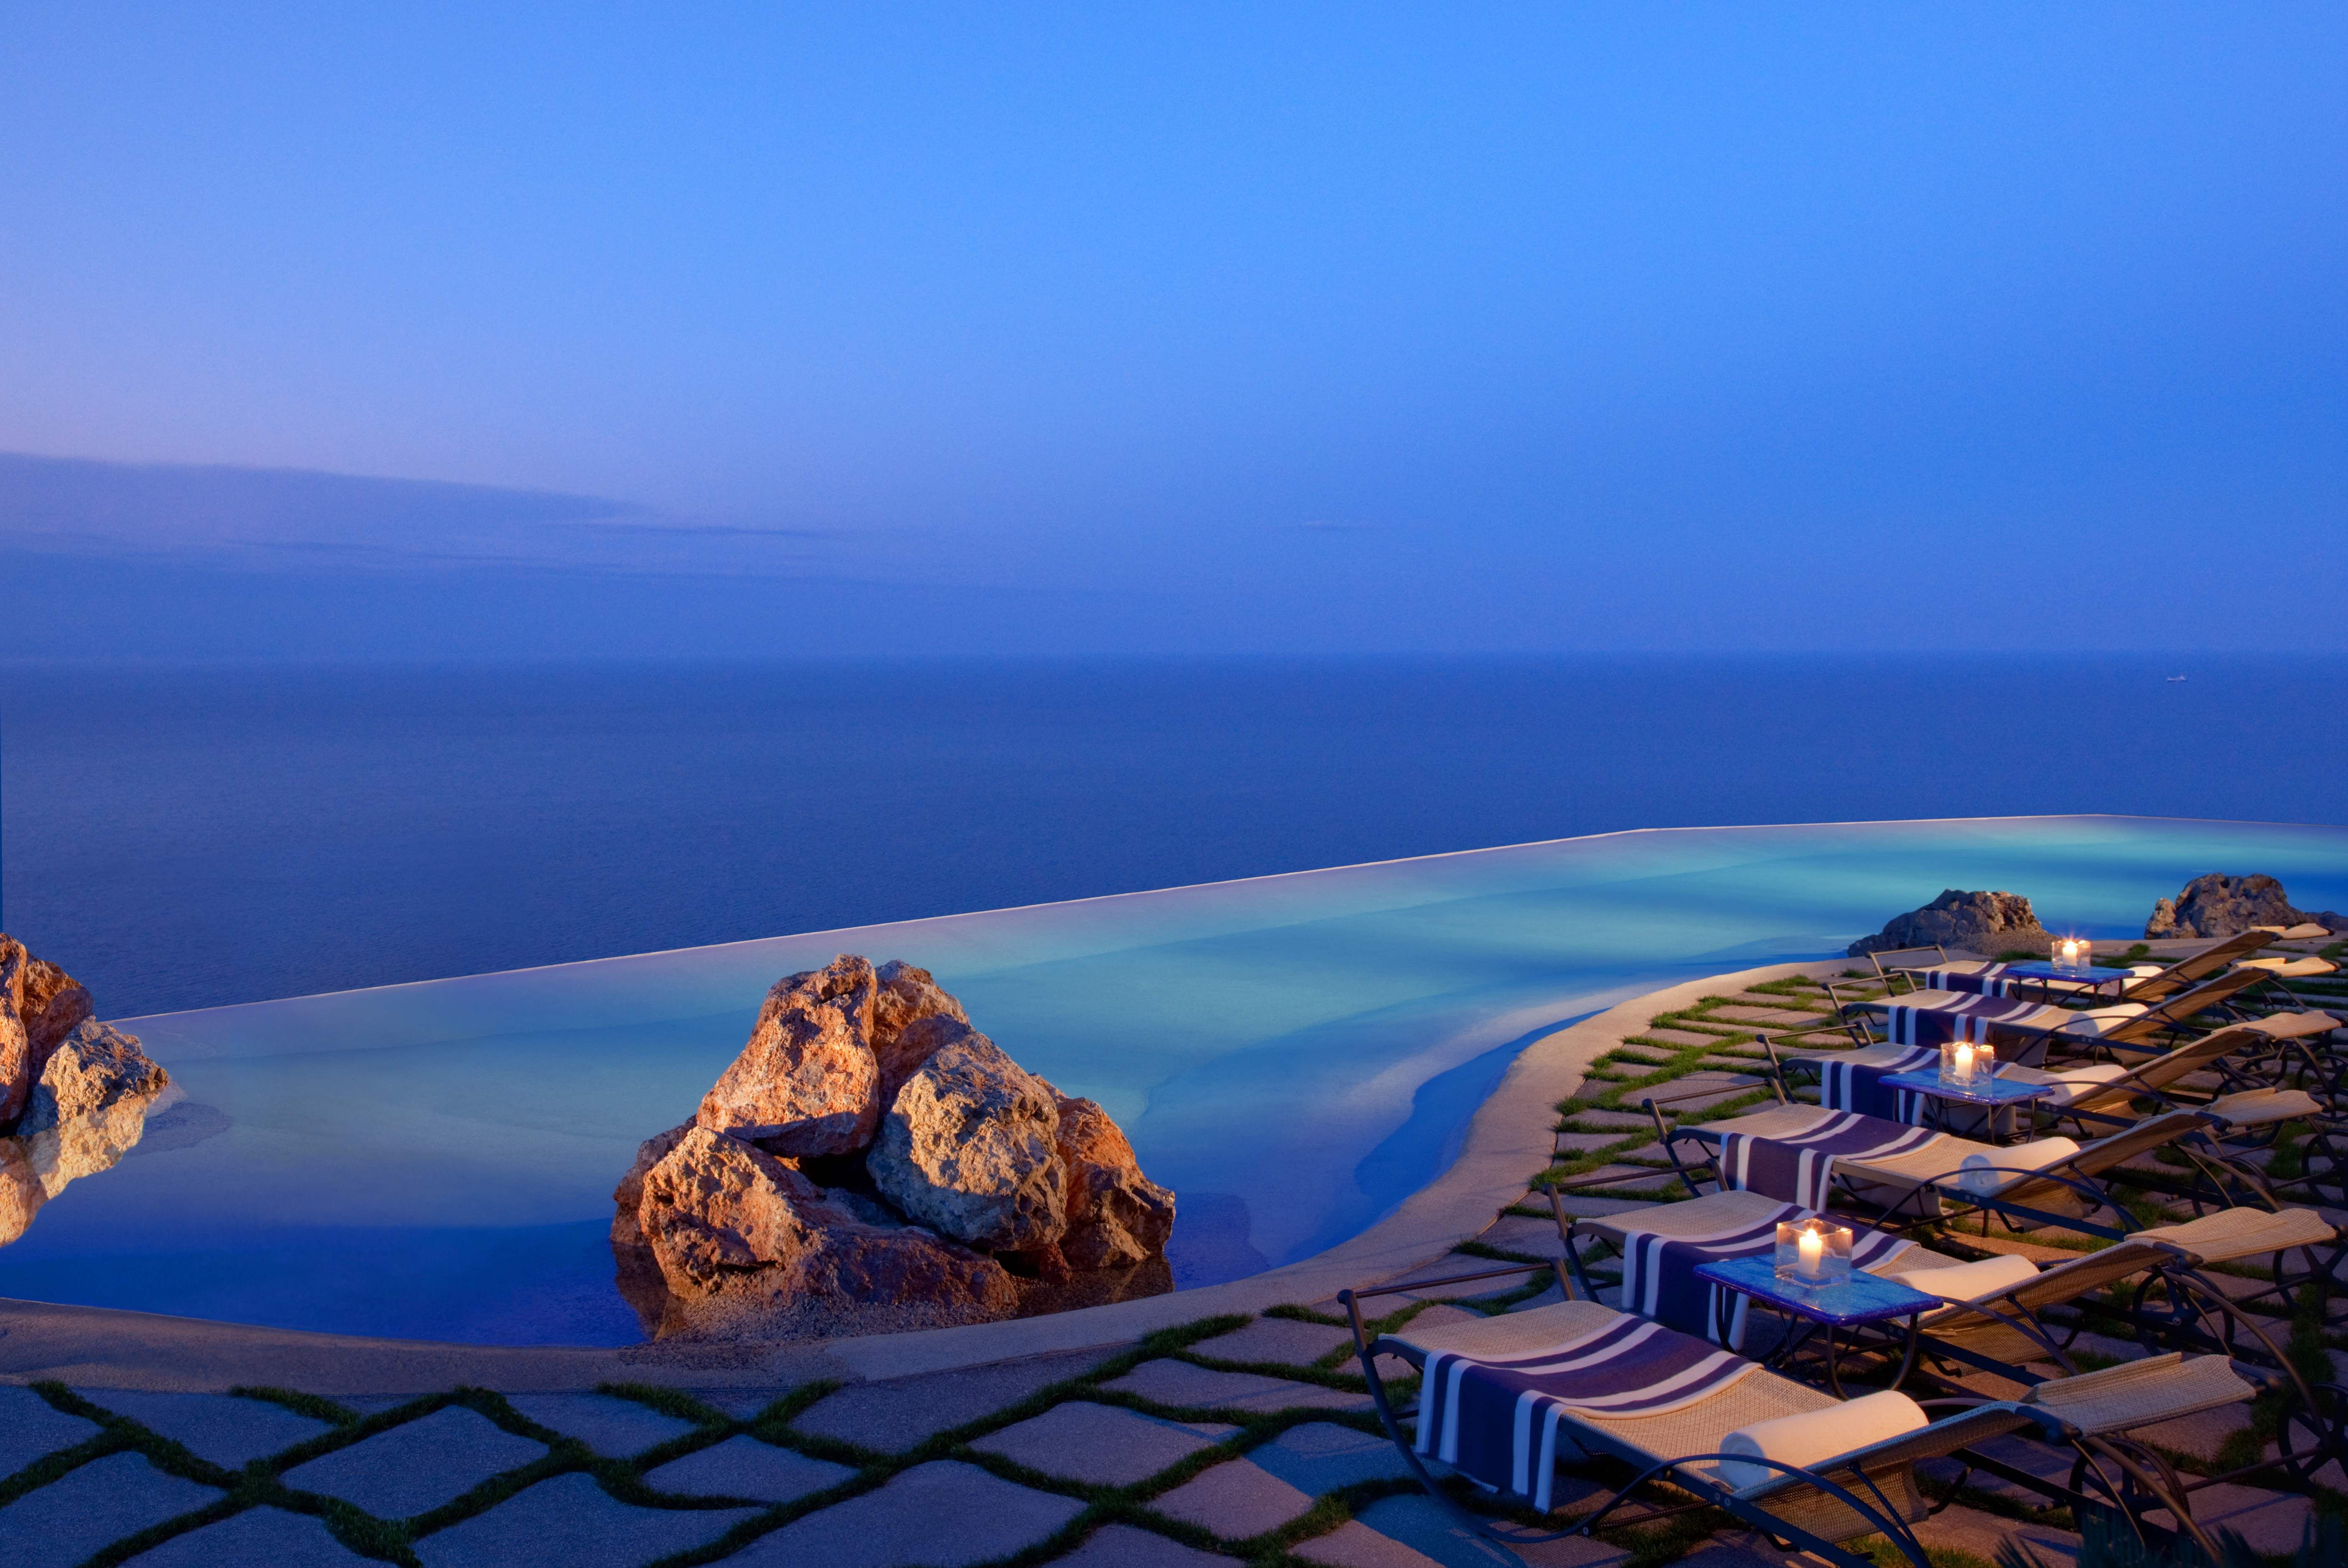 to the worlds most amazing infinity pools about time magazine msr pool night small swimming